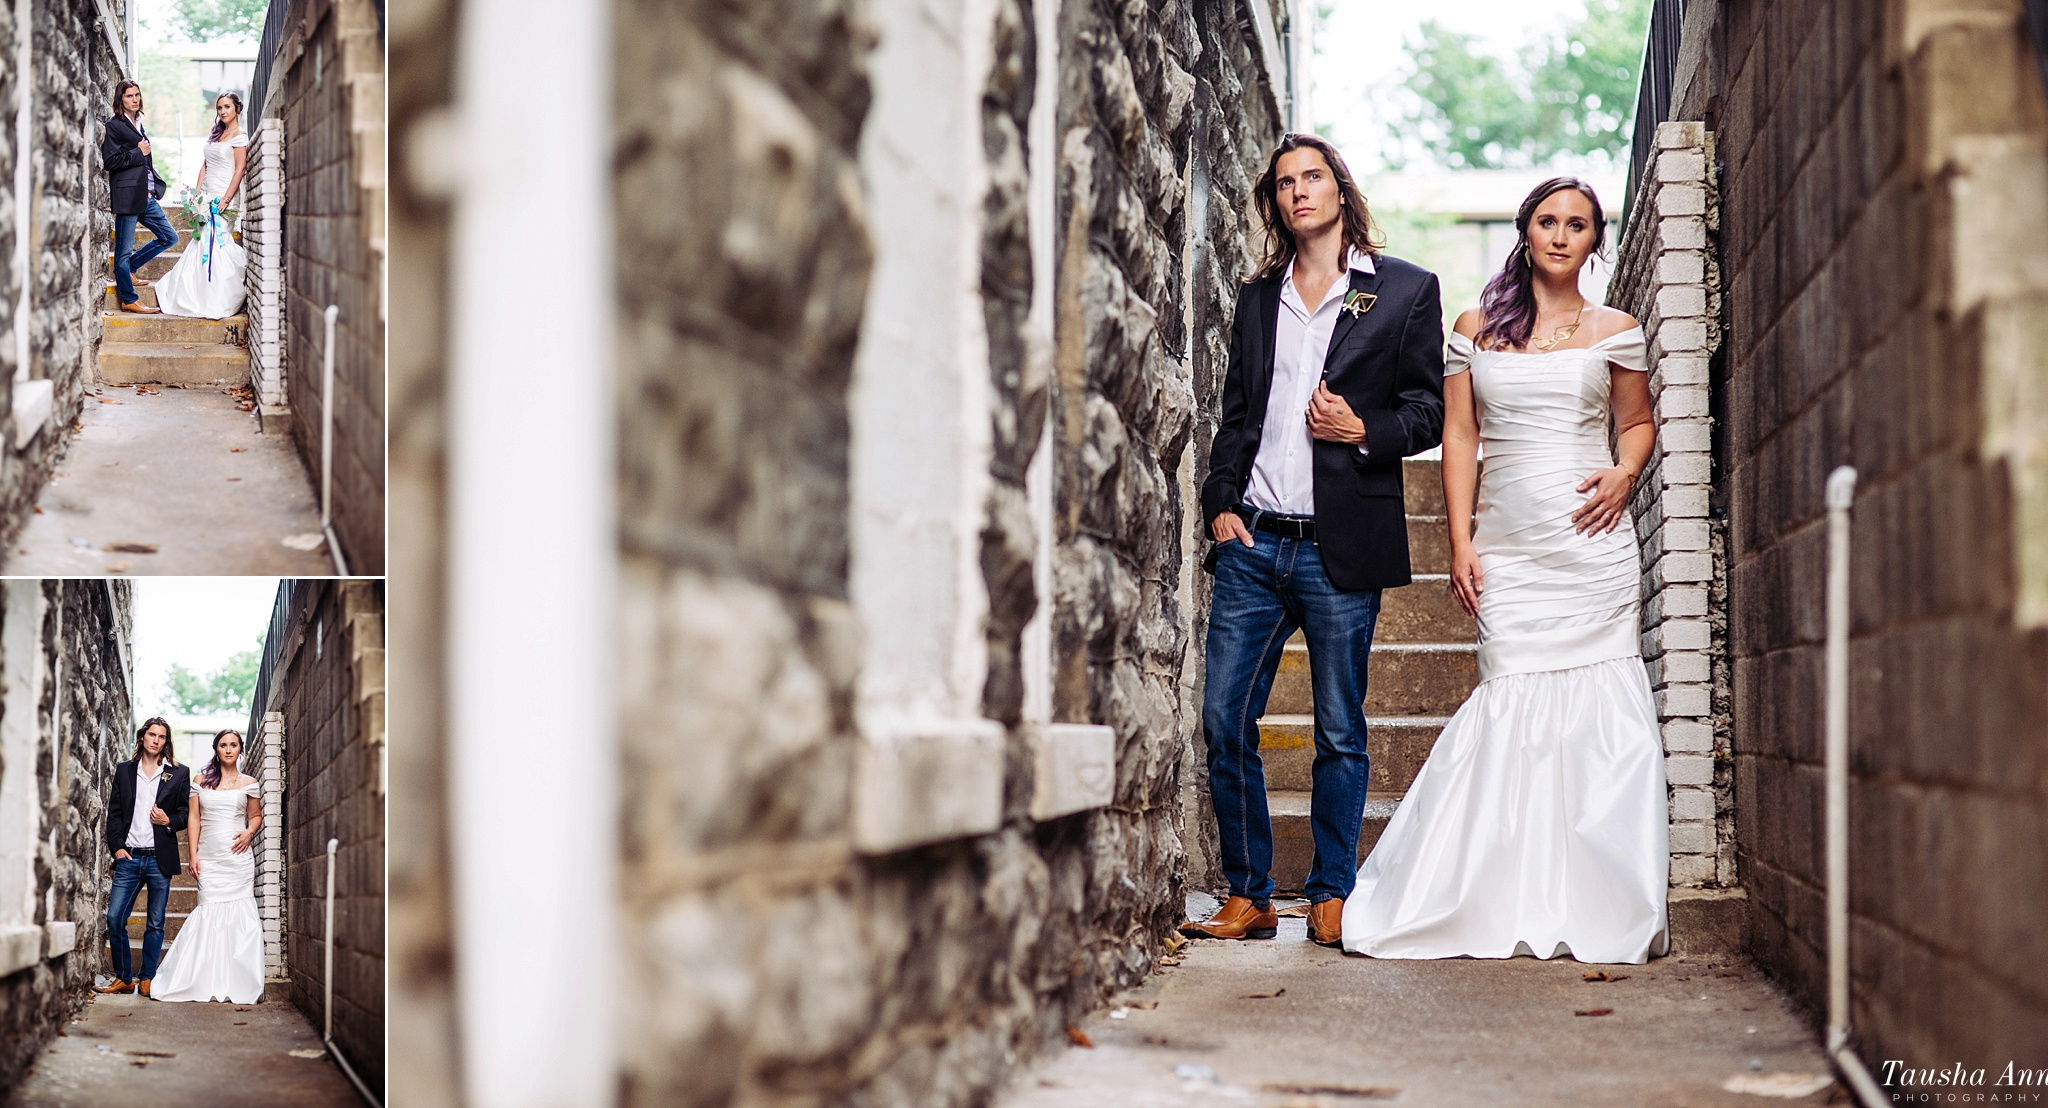 Nashville_Franklin_Photographer_Tausha_Ann_Photography_Styled_Nashville_Wedding_Southern_Inspration_Pinterest_Fabulous_Frocks_Aimee_Siegel_Paige_Barbee_Jewelry_0013